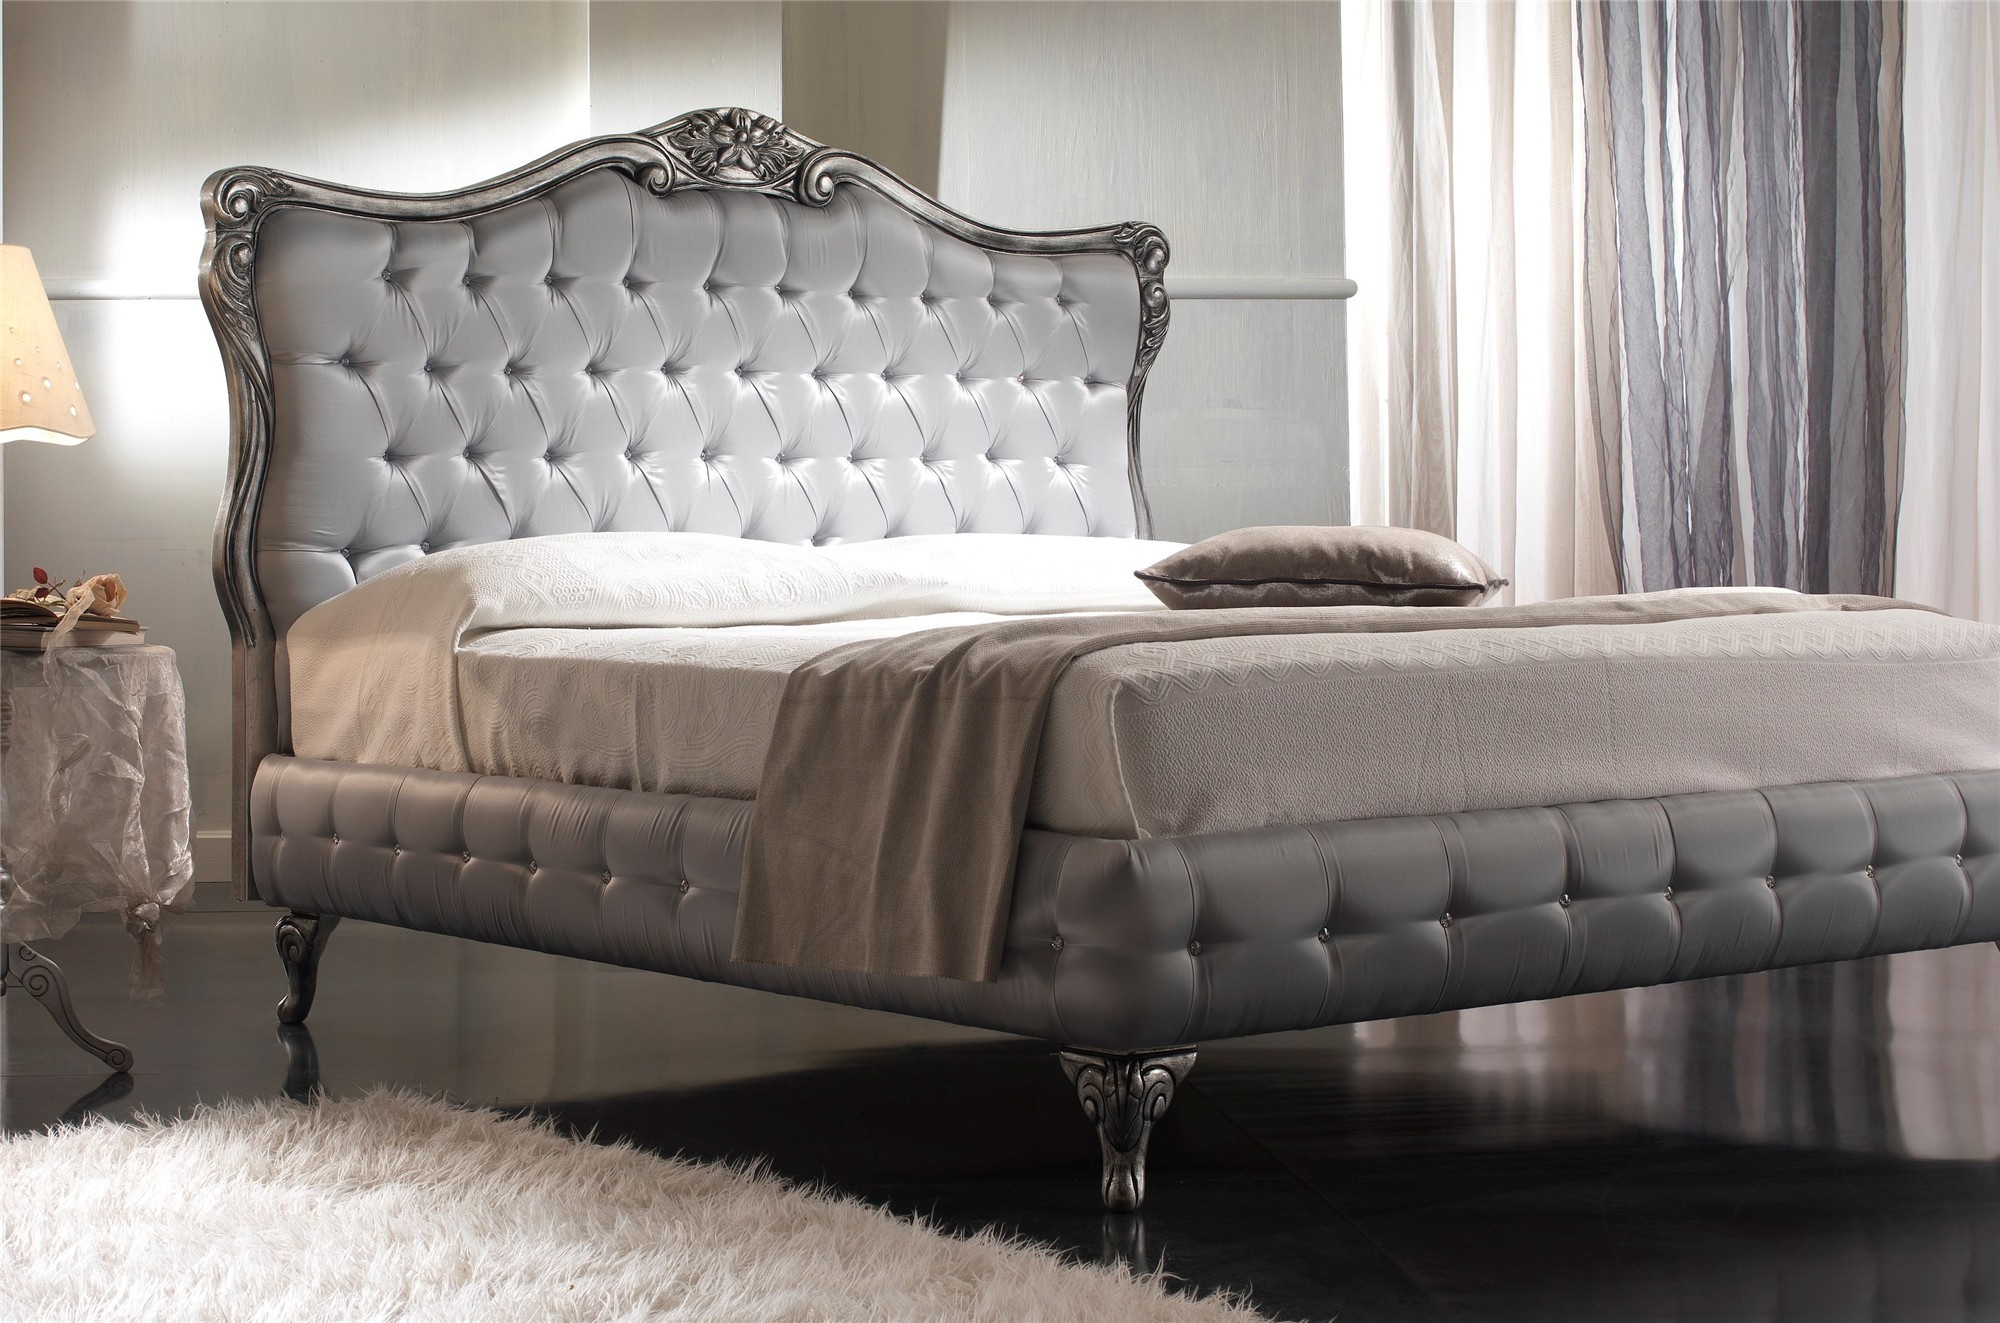 Quarrata Clara Luxury Traditional Italian Bed With